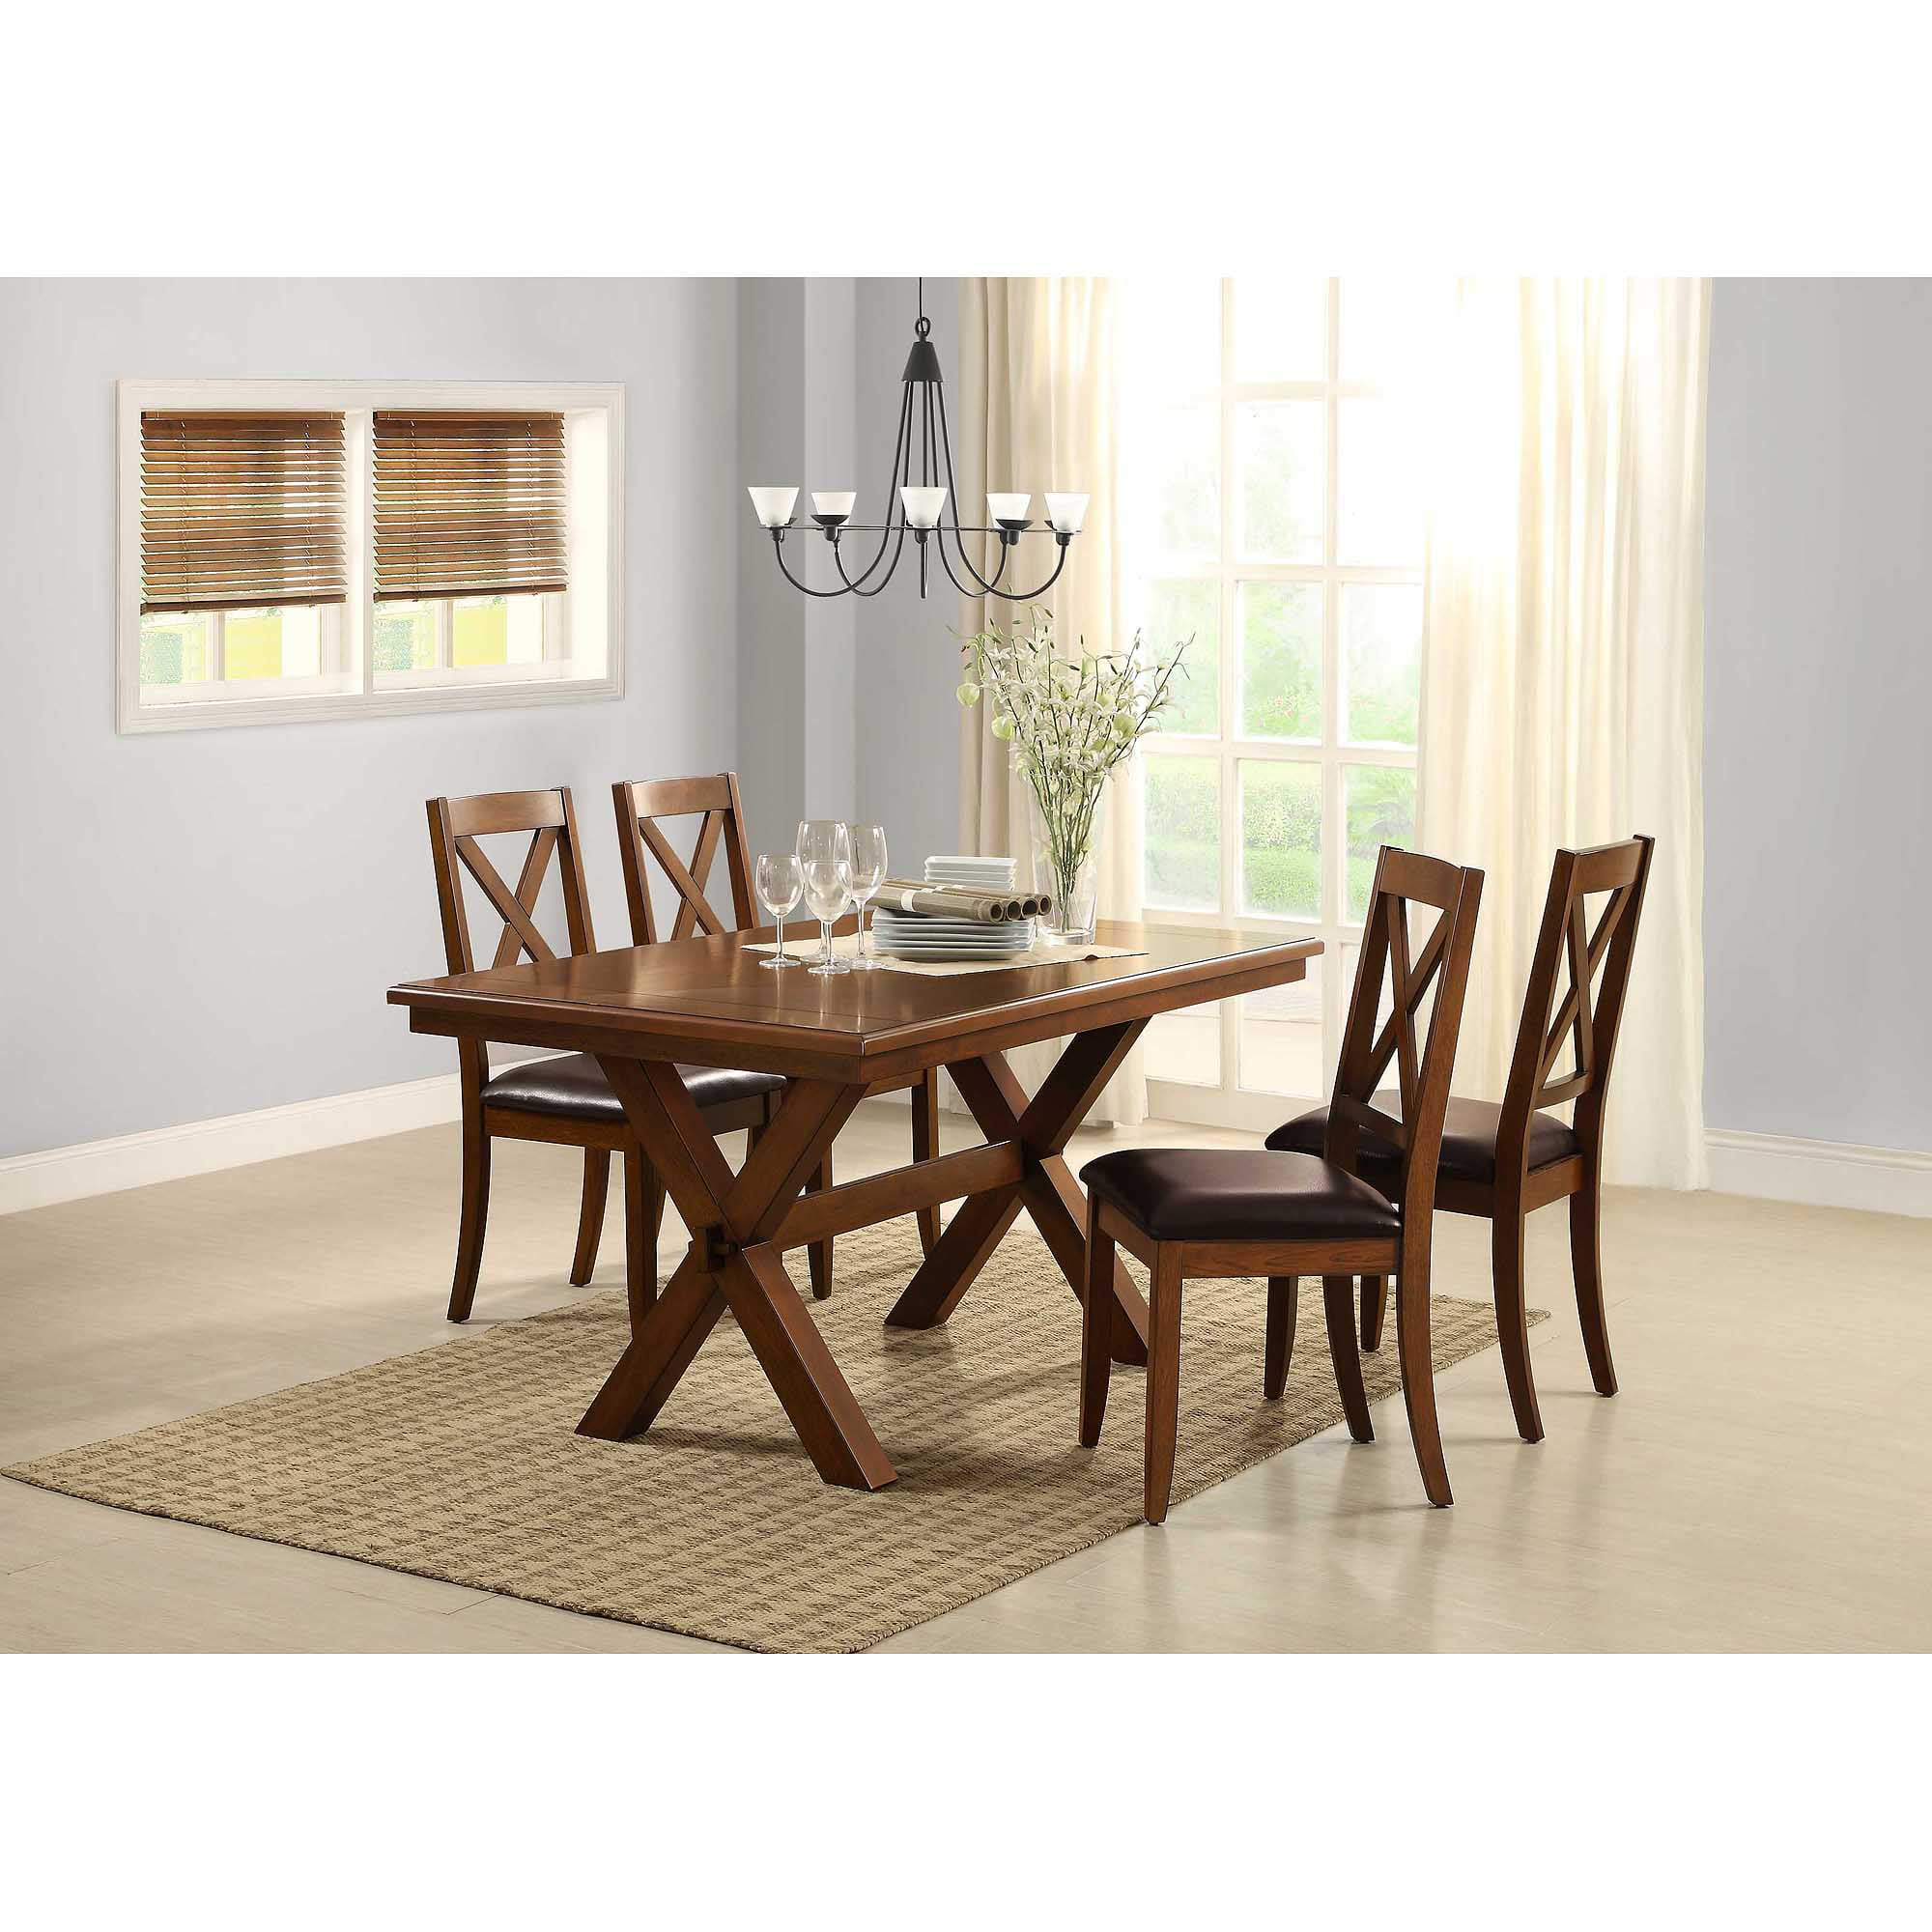 Better Homes & Gardens Maddox Crossing Dining Table, Brown - Walmart.com